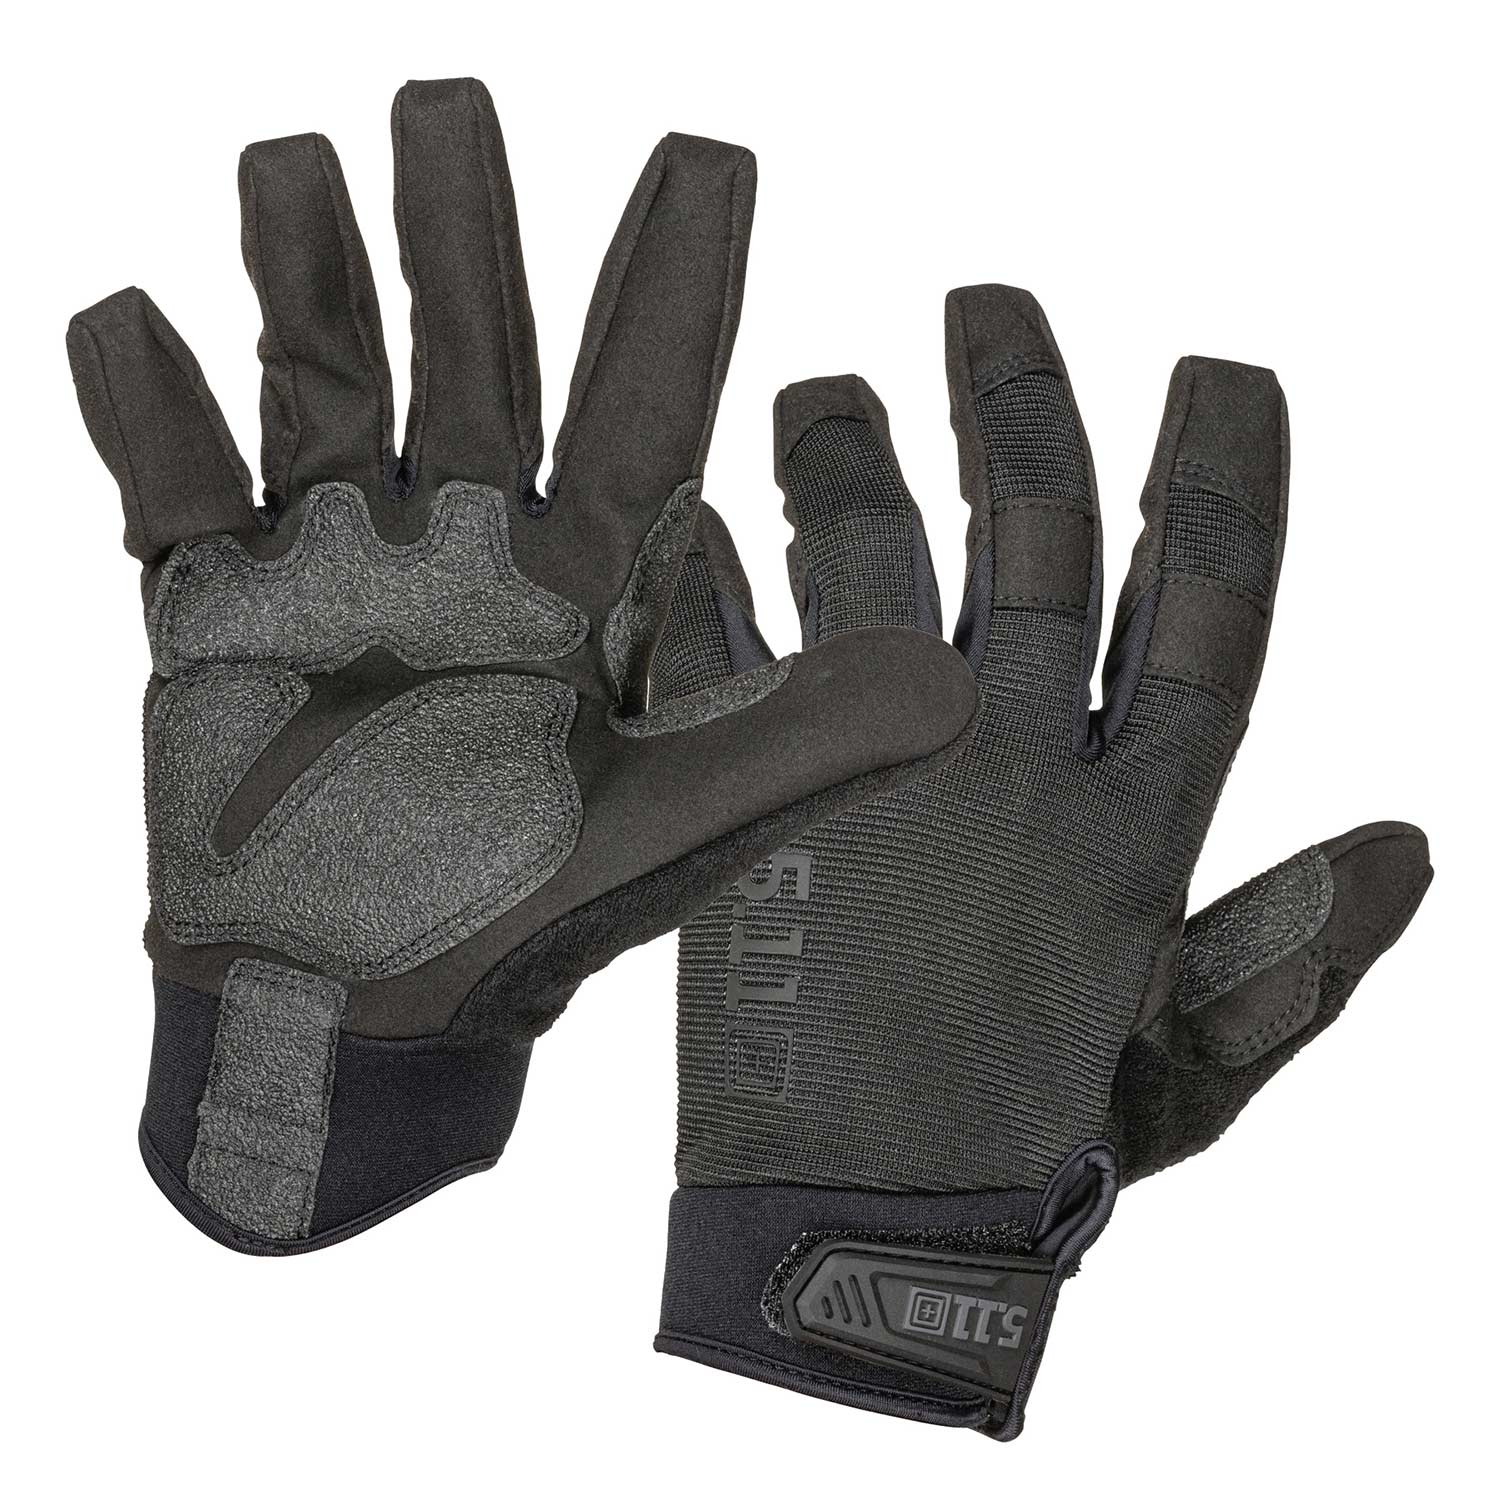 5.11 Tactical TAC A3 Glove